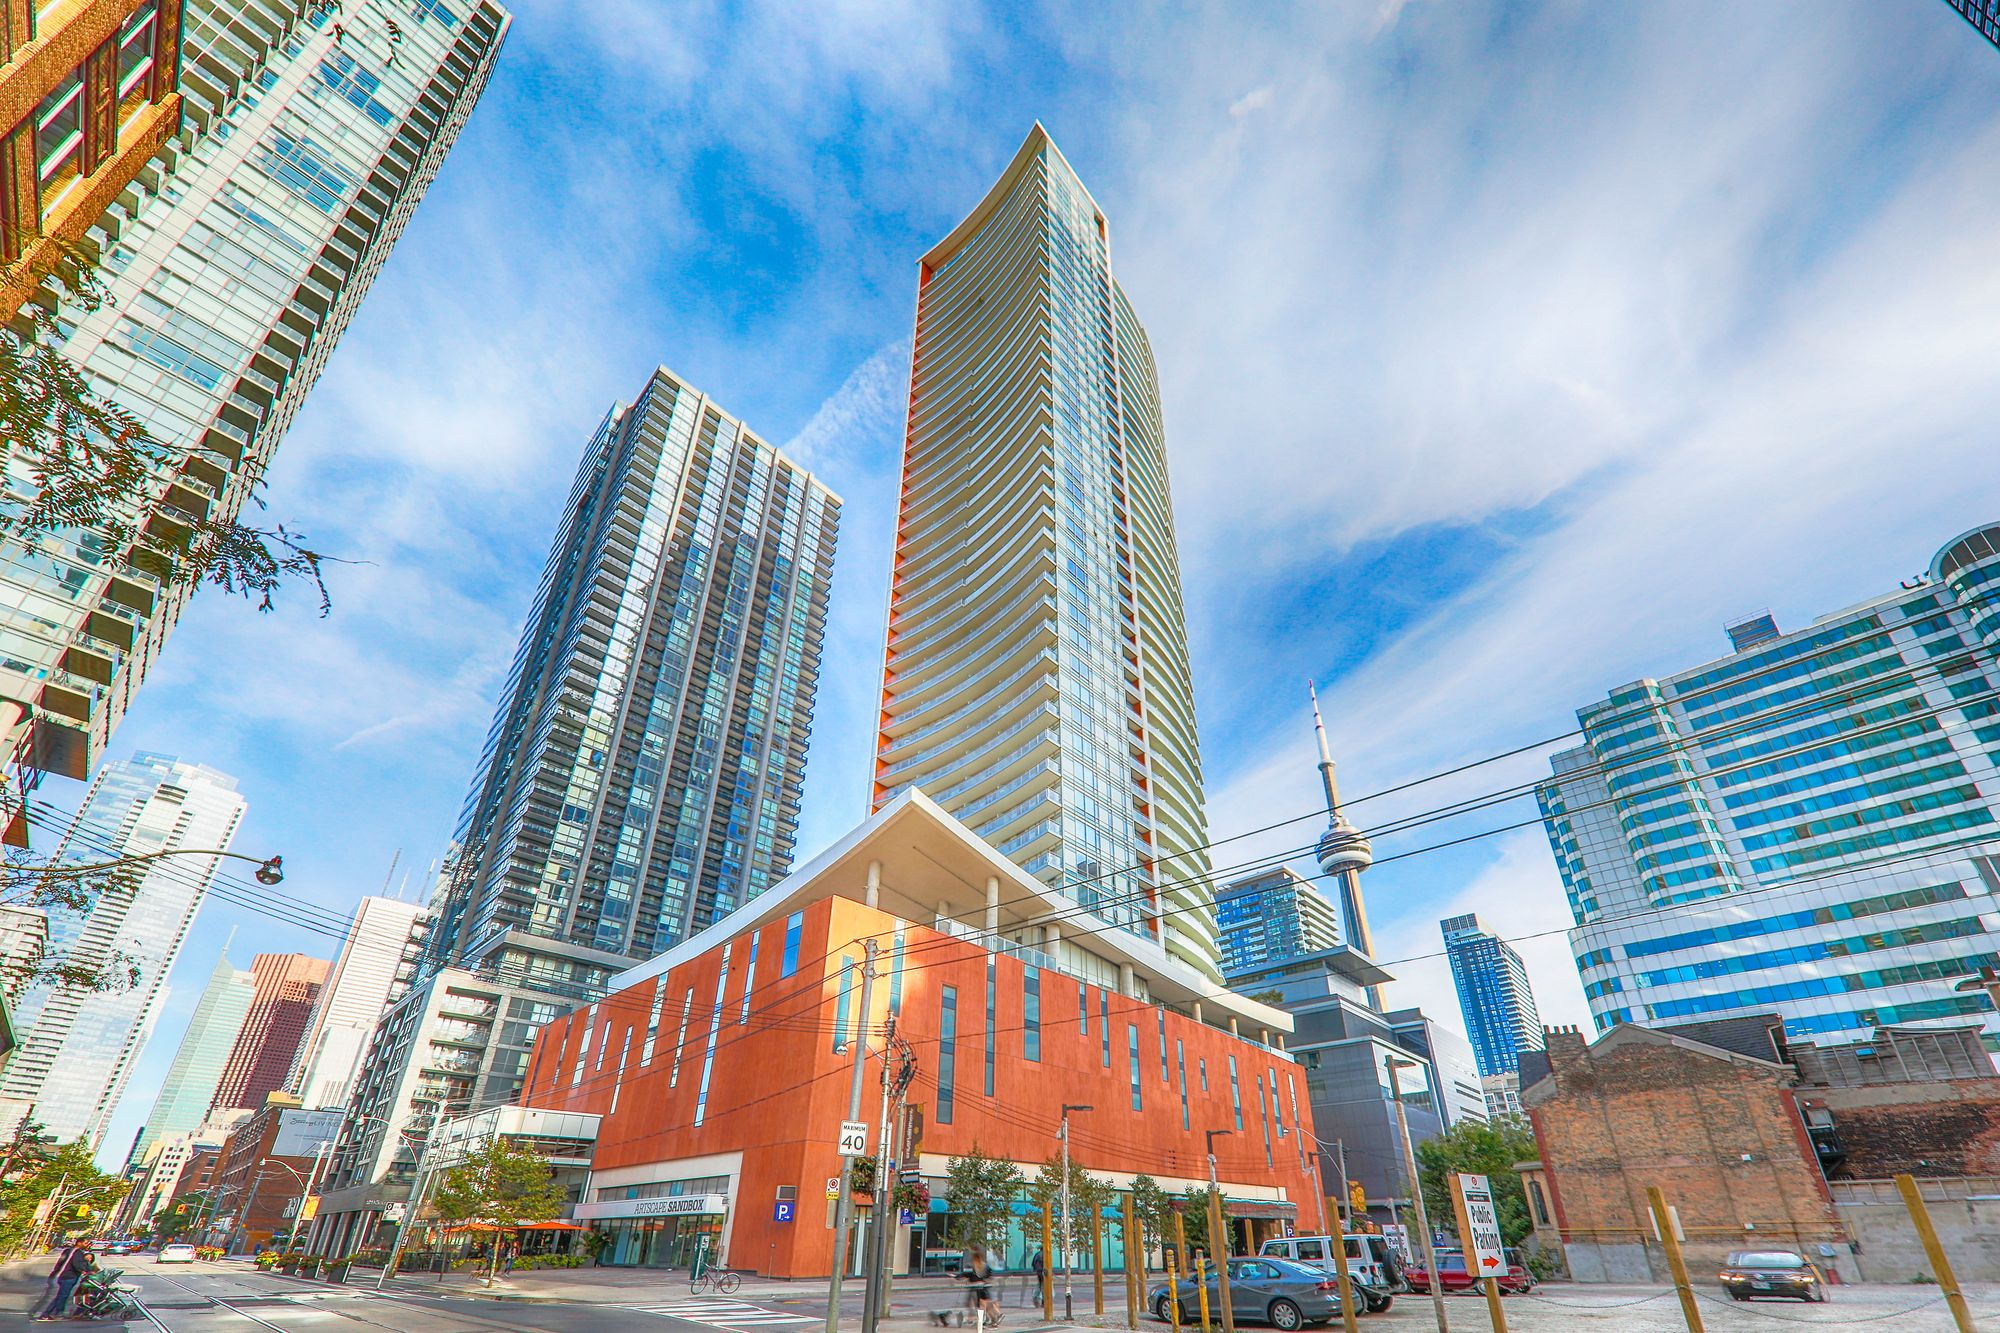 Cinema Tower At 21 Widmer St 5 Condos For Sale 12 Units For Rent Strata Ca